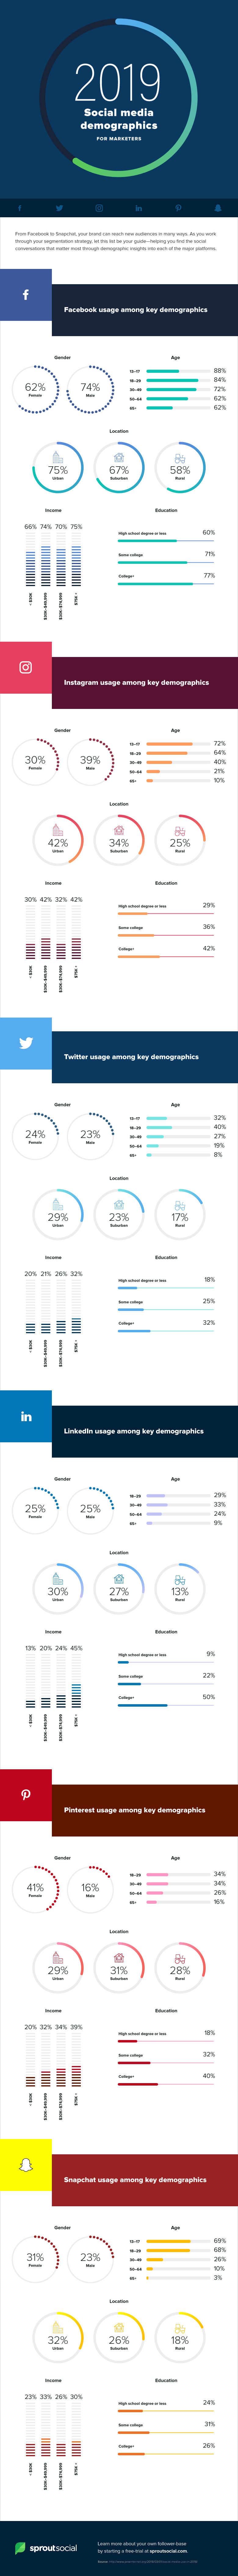 Infographic looks at social media platform usage stats